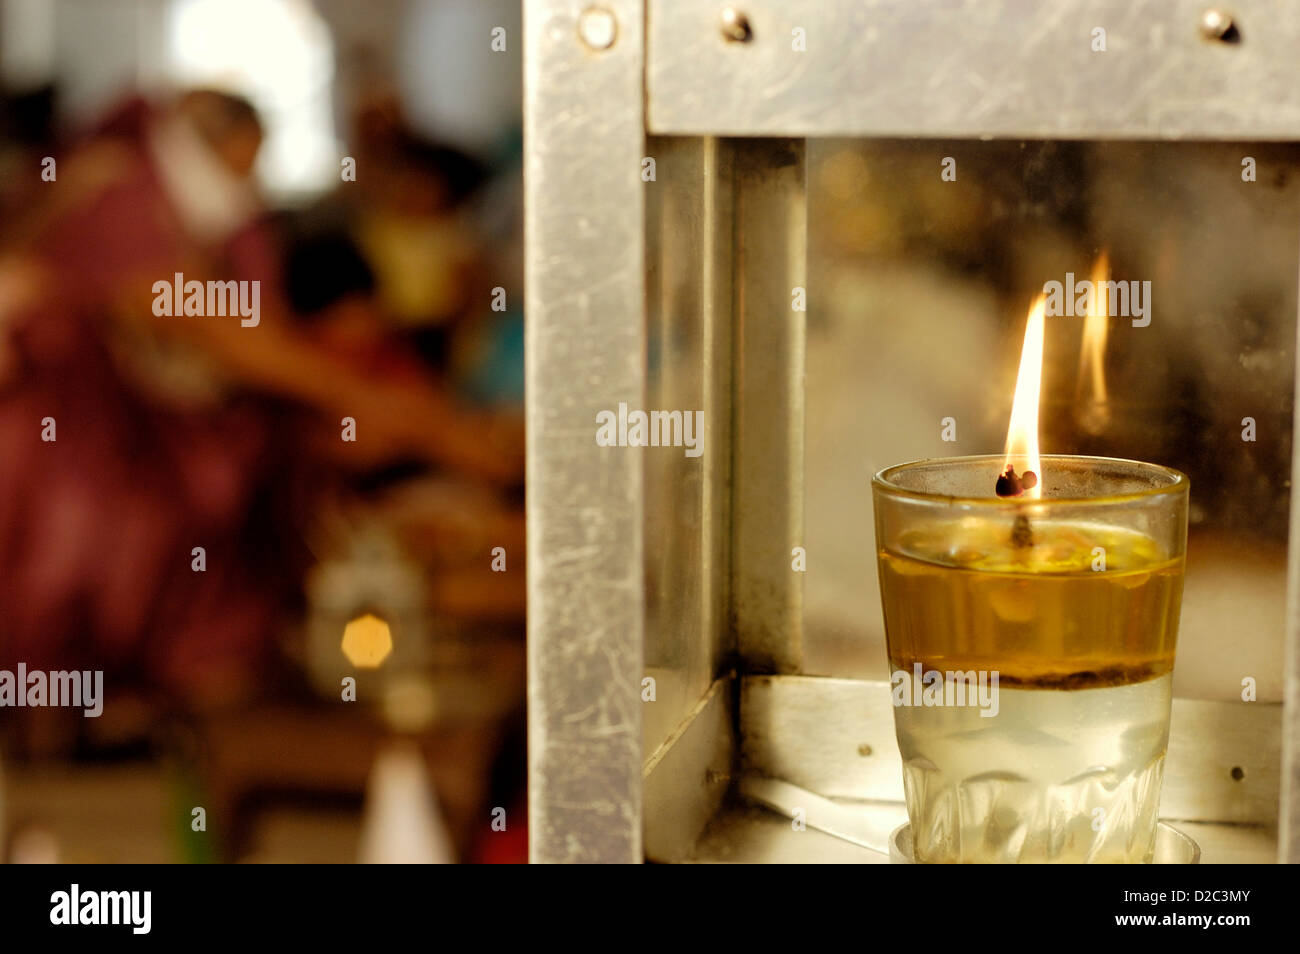 Oil Lamp Diya On Special Prayer Being Offered By Jain Religious Community In India - Stock Image